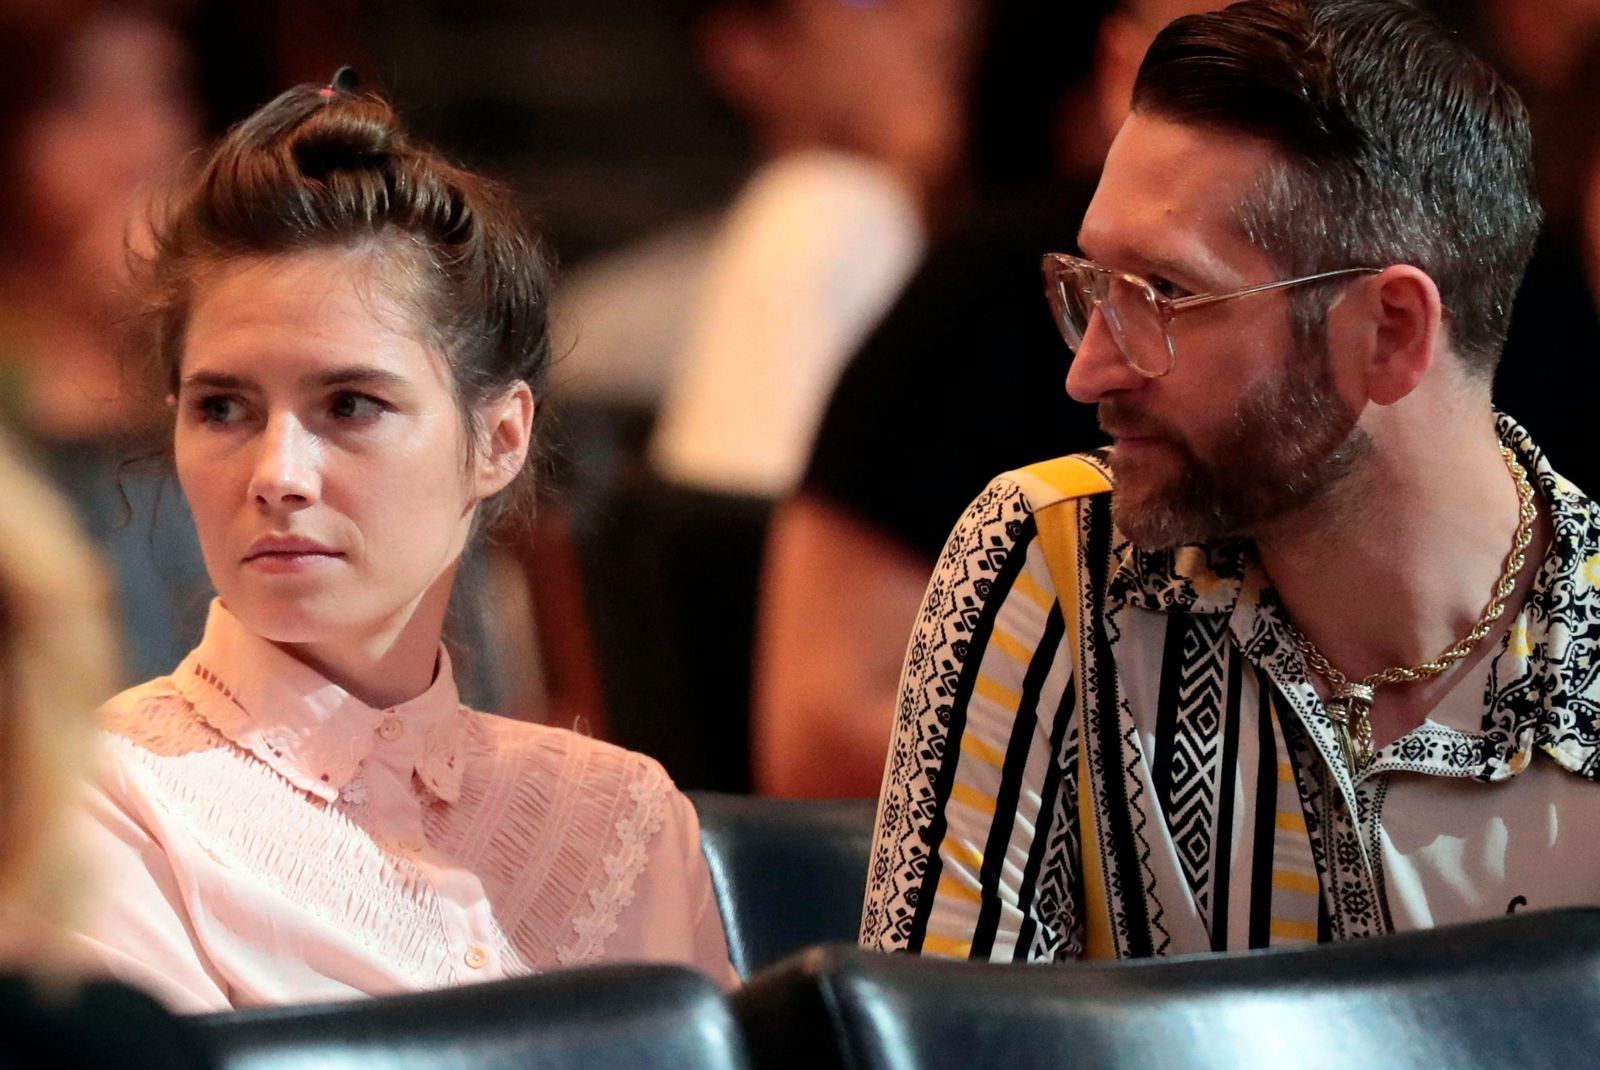 Amanda Knox and her fiancee Christopher Robinson attend a conference during a Criminal Justice Festival at the University of Modena, Italy, Friday, June, 2019. . (Elisabetta Baracchi/ANSA via AP)